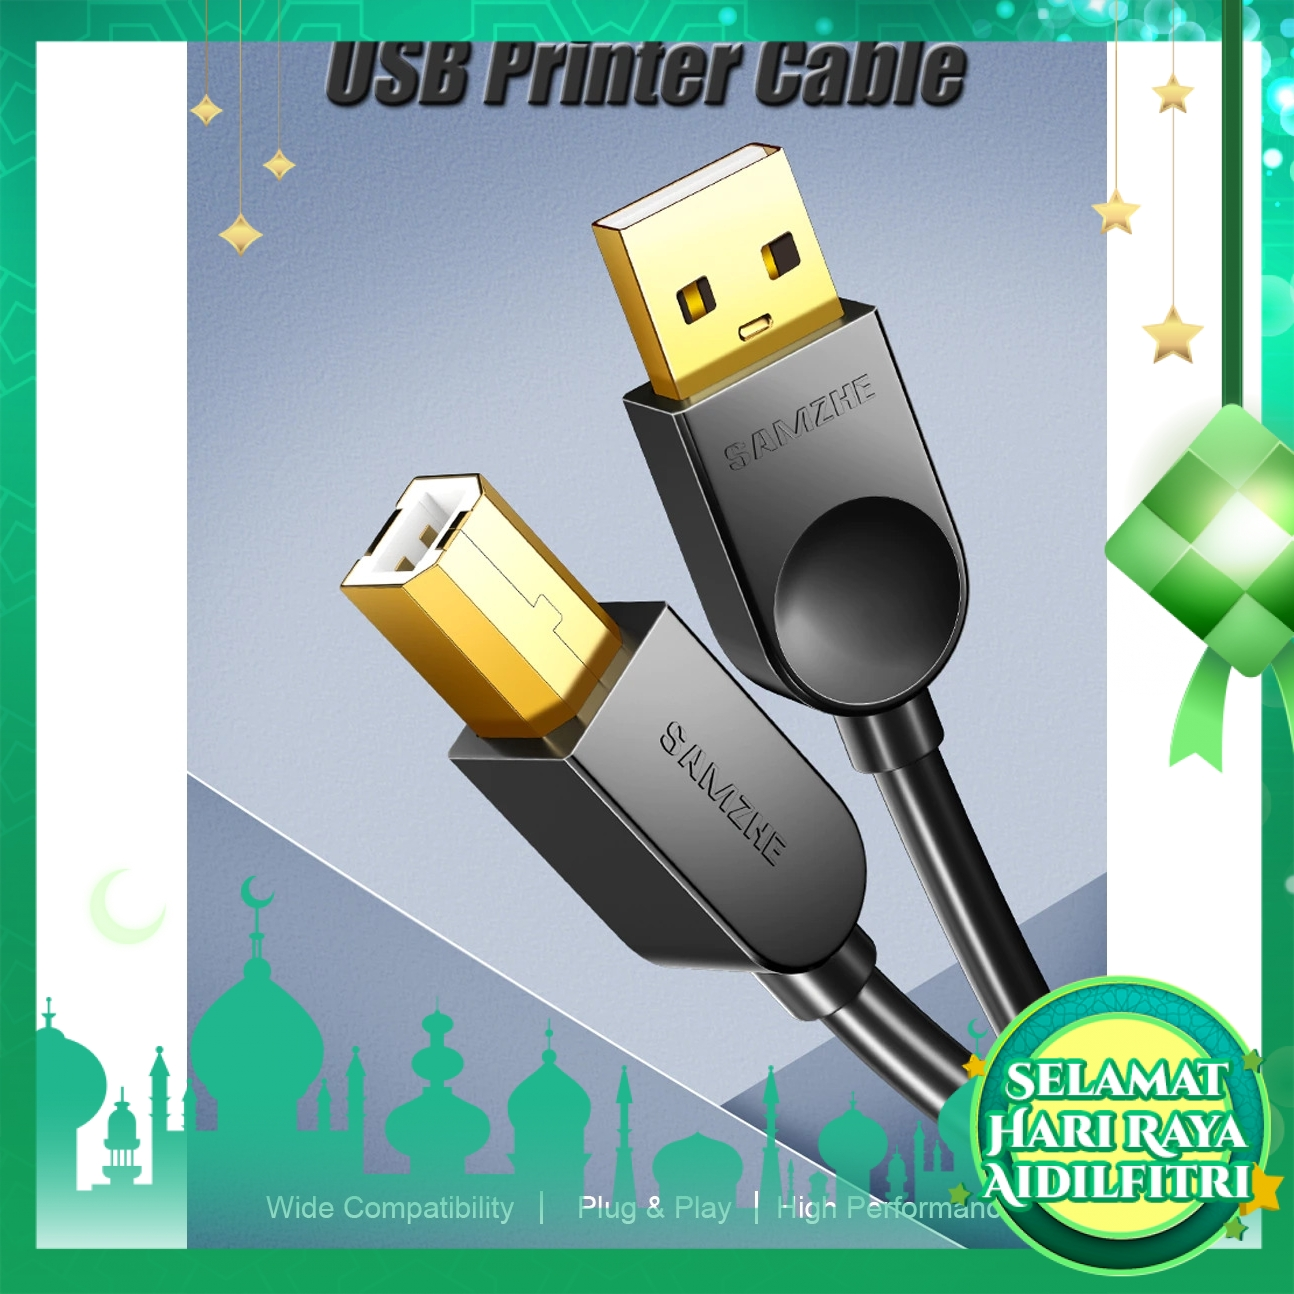 SAMZHE BA-750 Print Cable USB 2.0 Type A Male To B Male Sync Data Scanner Cable for HP Canon Epson Printer 5M